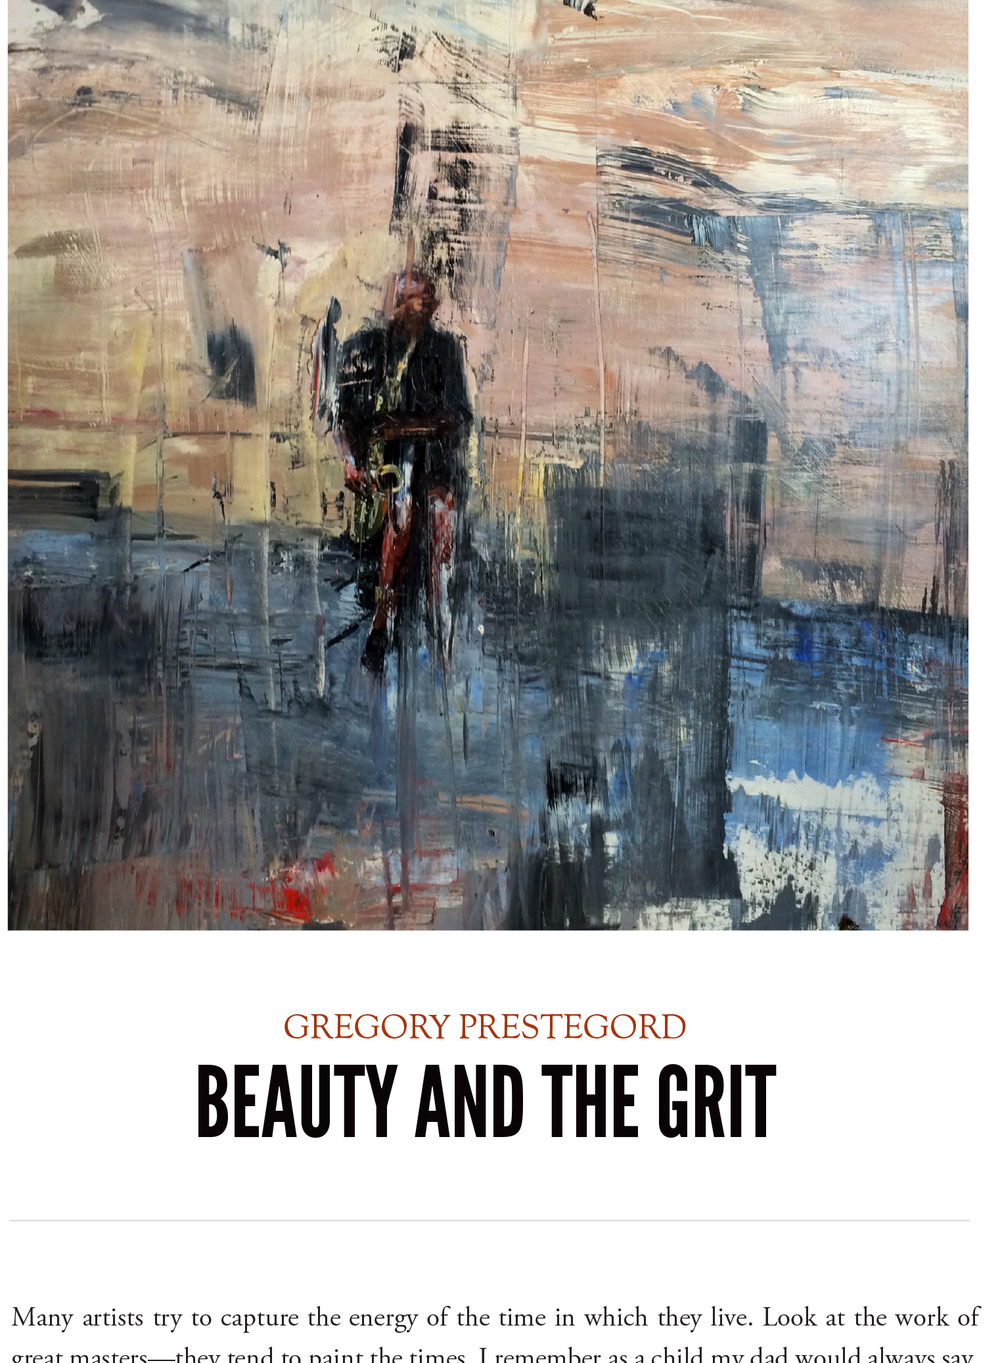 Gregory Prestegord: Beauty and the Grit